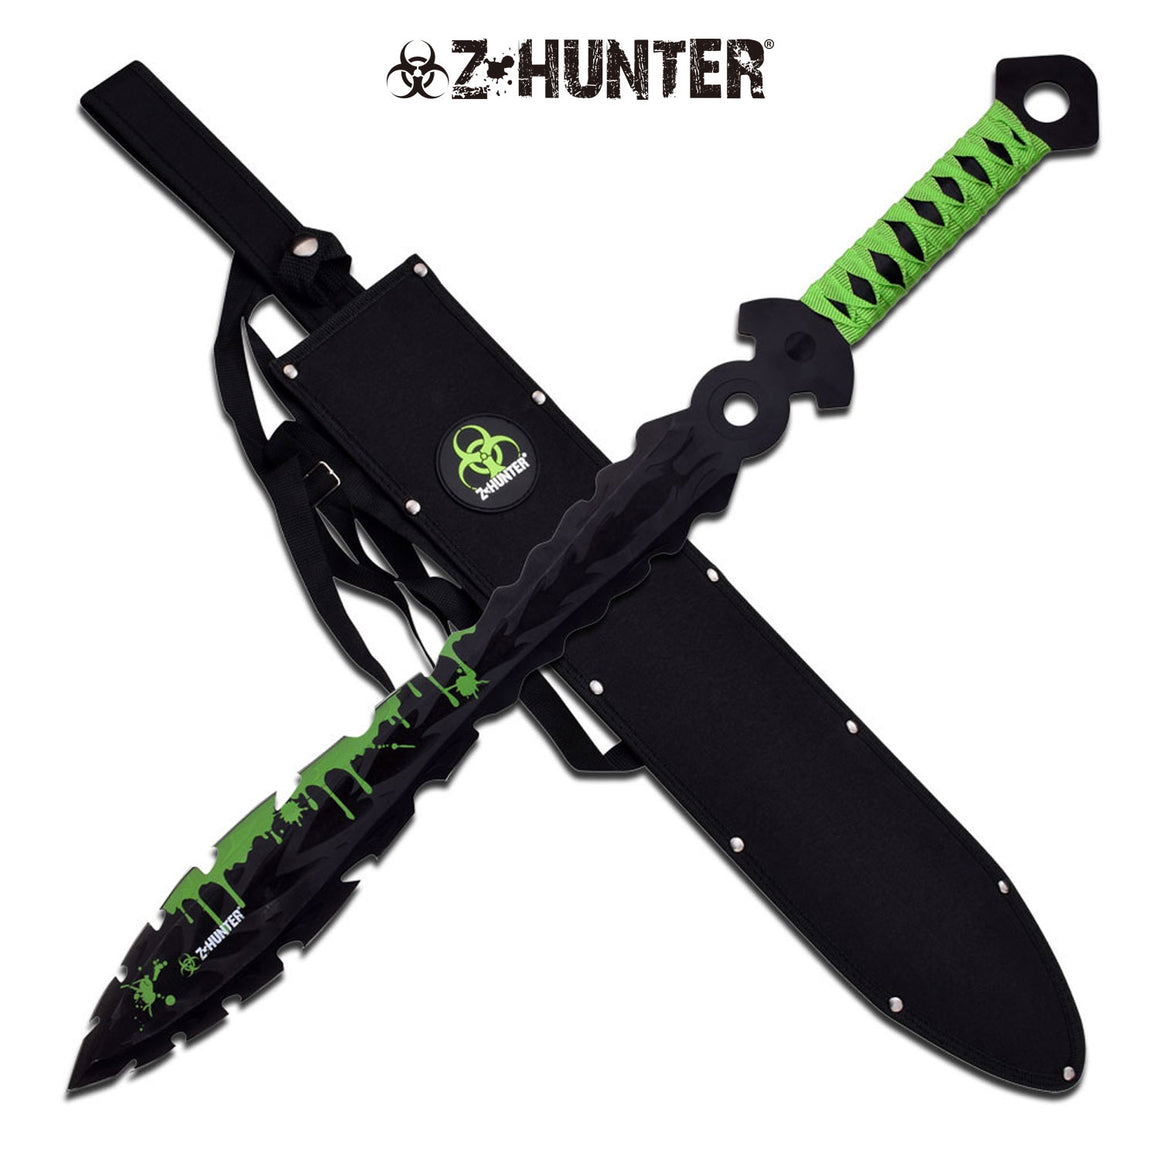 Z-Hunter ZB-122 Fixed Blade Knife